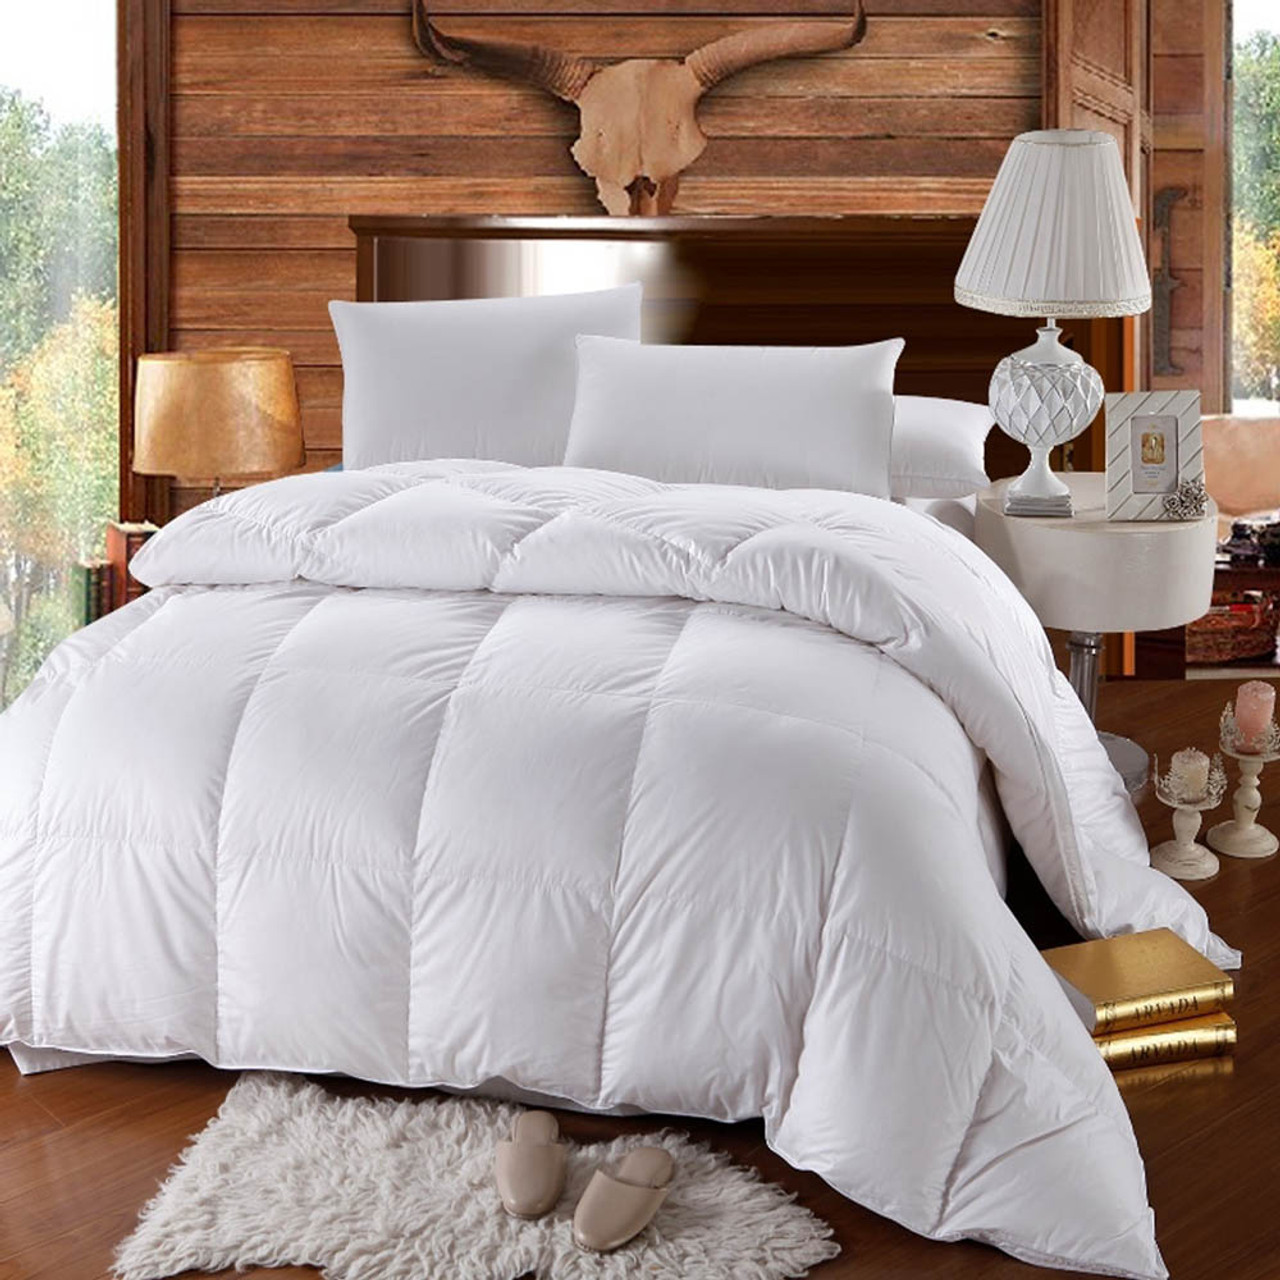 500 thread count white duck down comforter extra warm winter. Black Bedroom Furniture Sets. Home Design Ideas